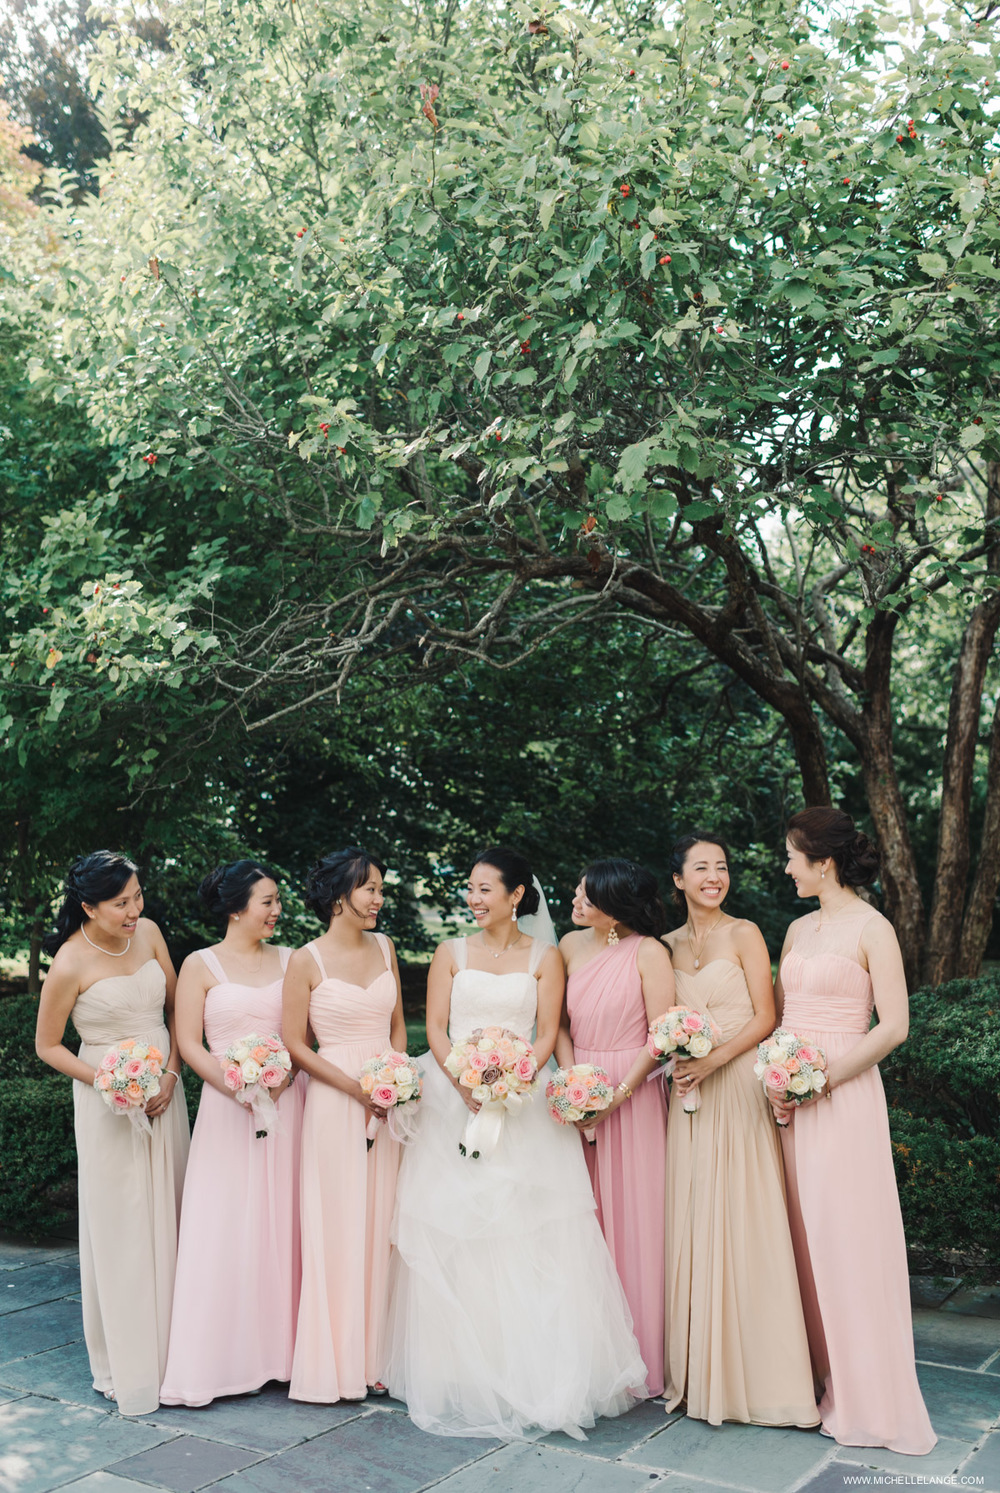 Mismatched Bridesmaids Dresses at The Carltun in Long Island